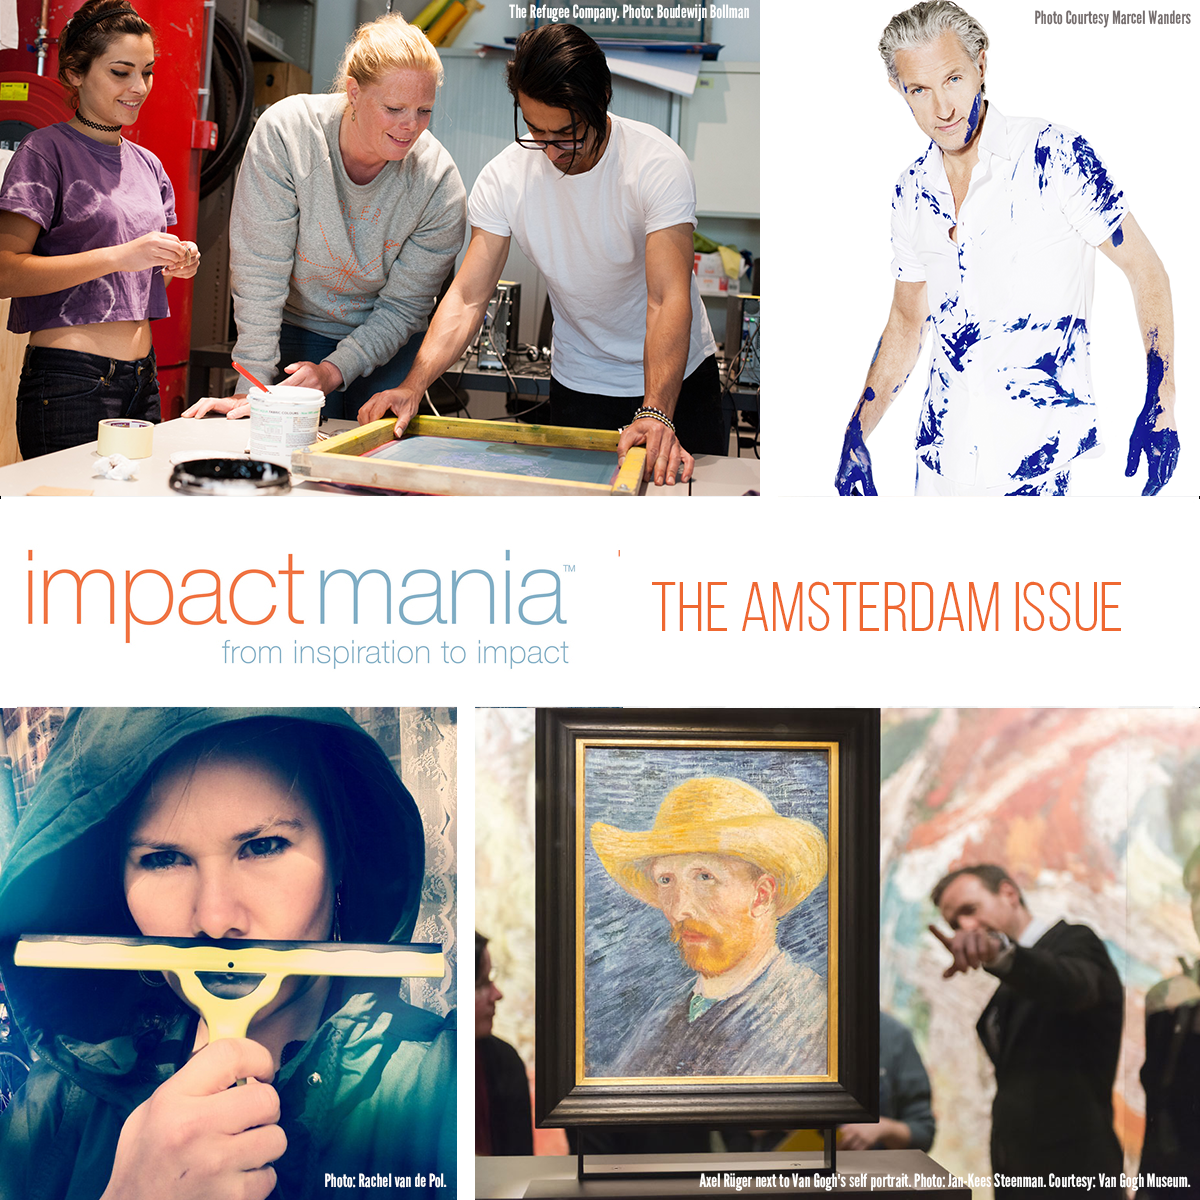 impactmania Amsterdam issue is out!